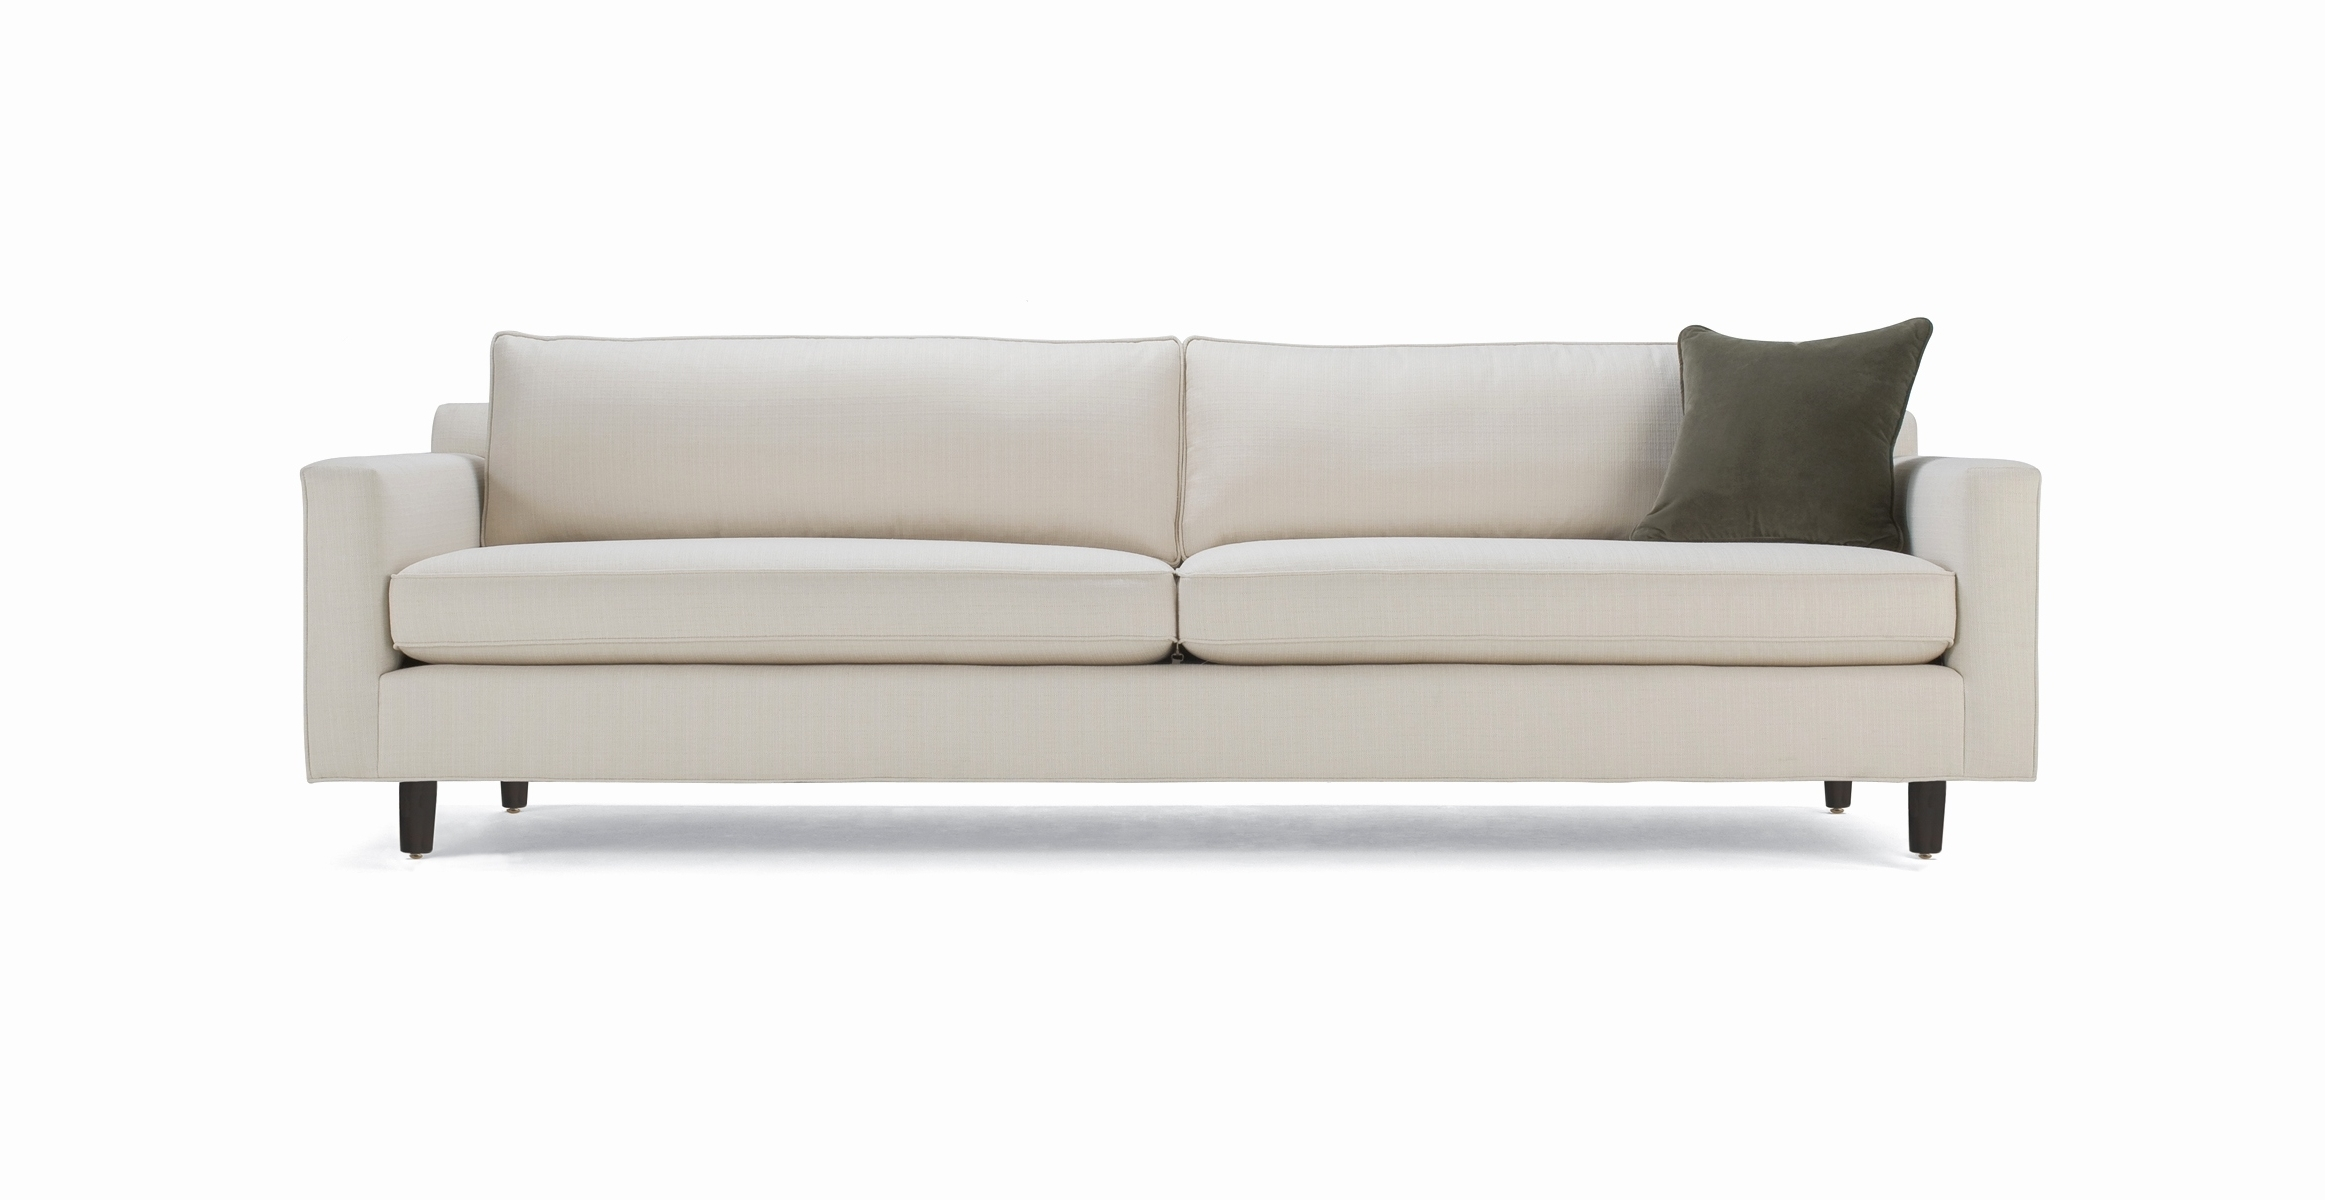 Well Liked Mitchell Gold Sofas With Regard To New Mitchell Gold Sofa 2018 – Couches Ideas (View 15 of 15)